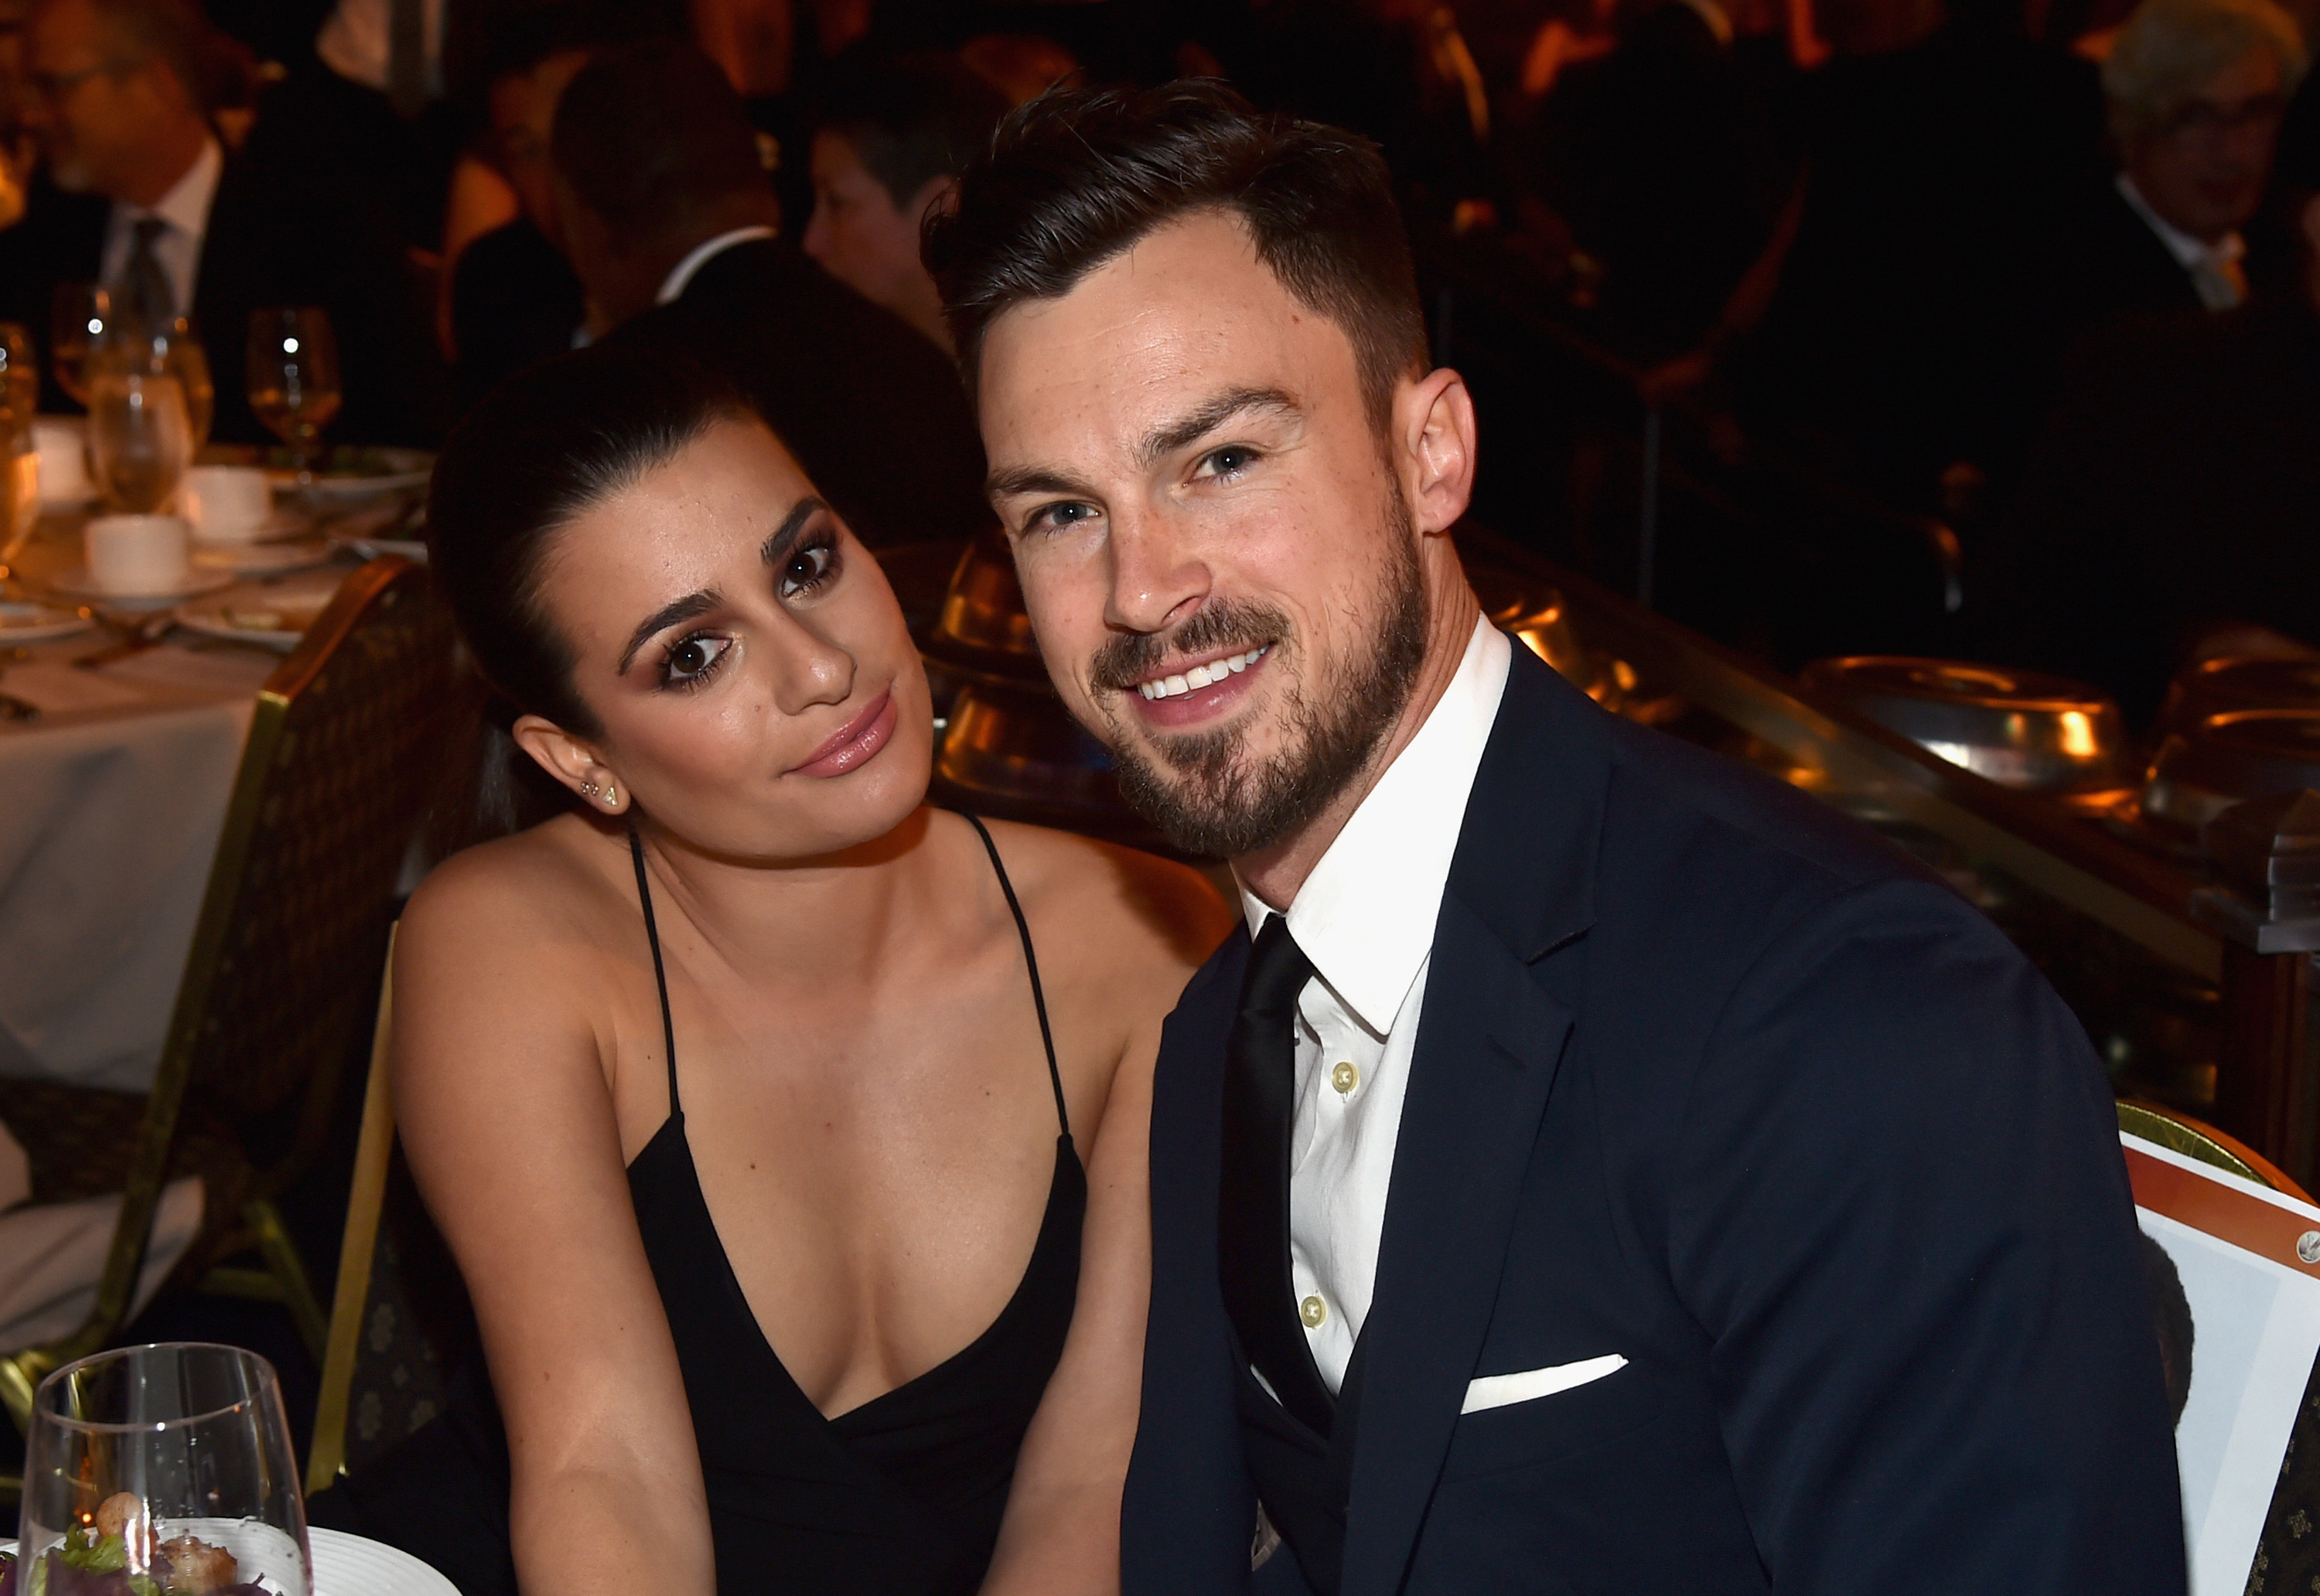 Lea Michele and Matthew Paetz 'split in secret after two years of dating'